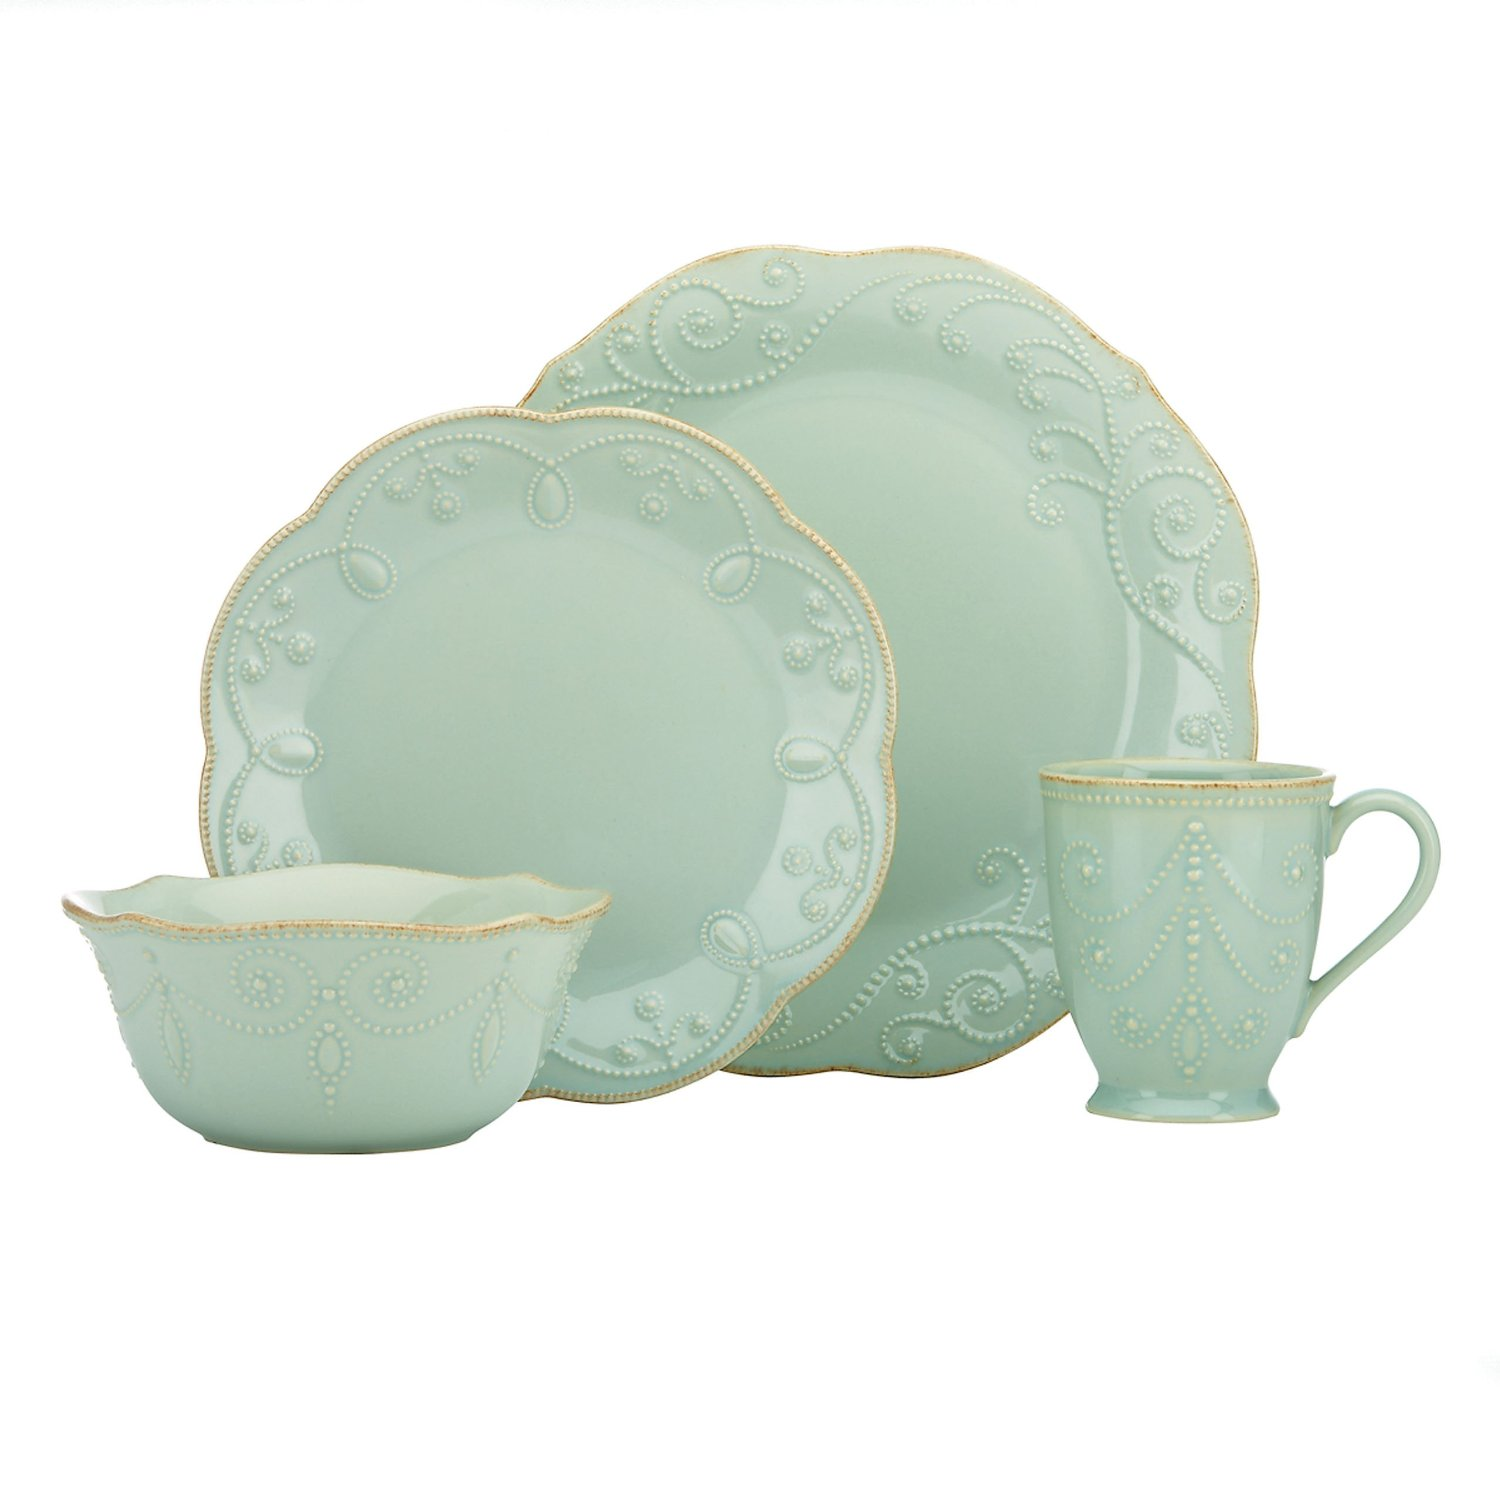 Dinnerware set!